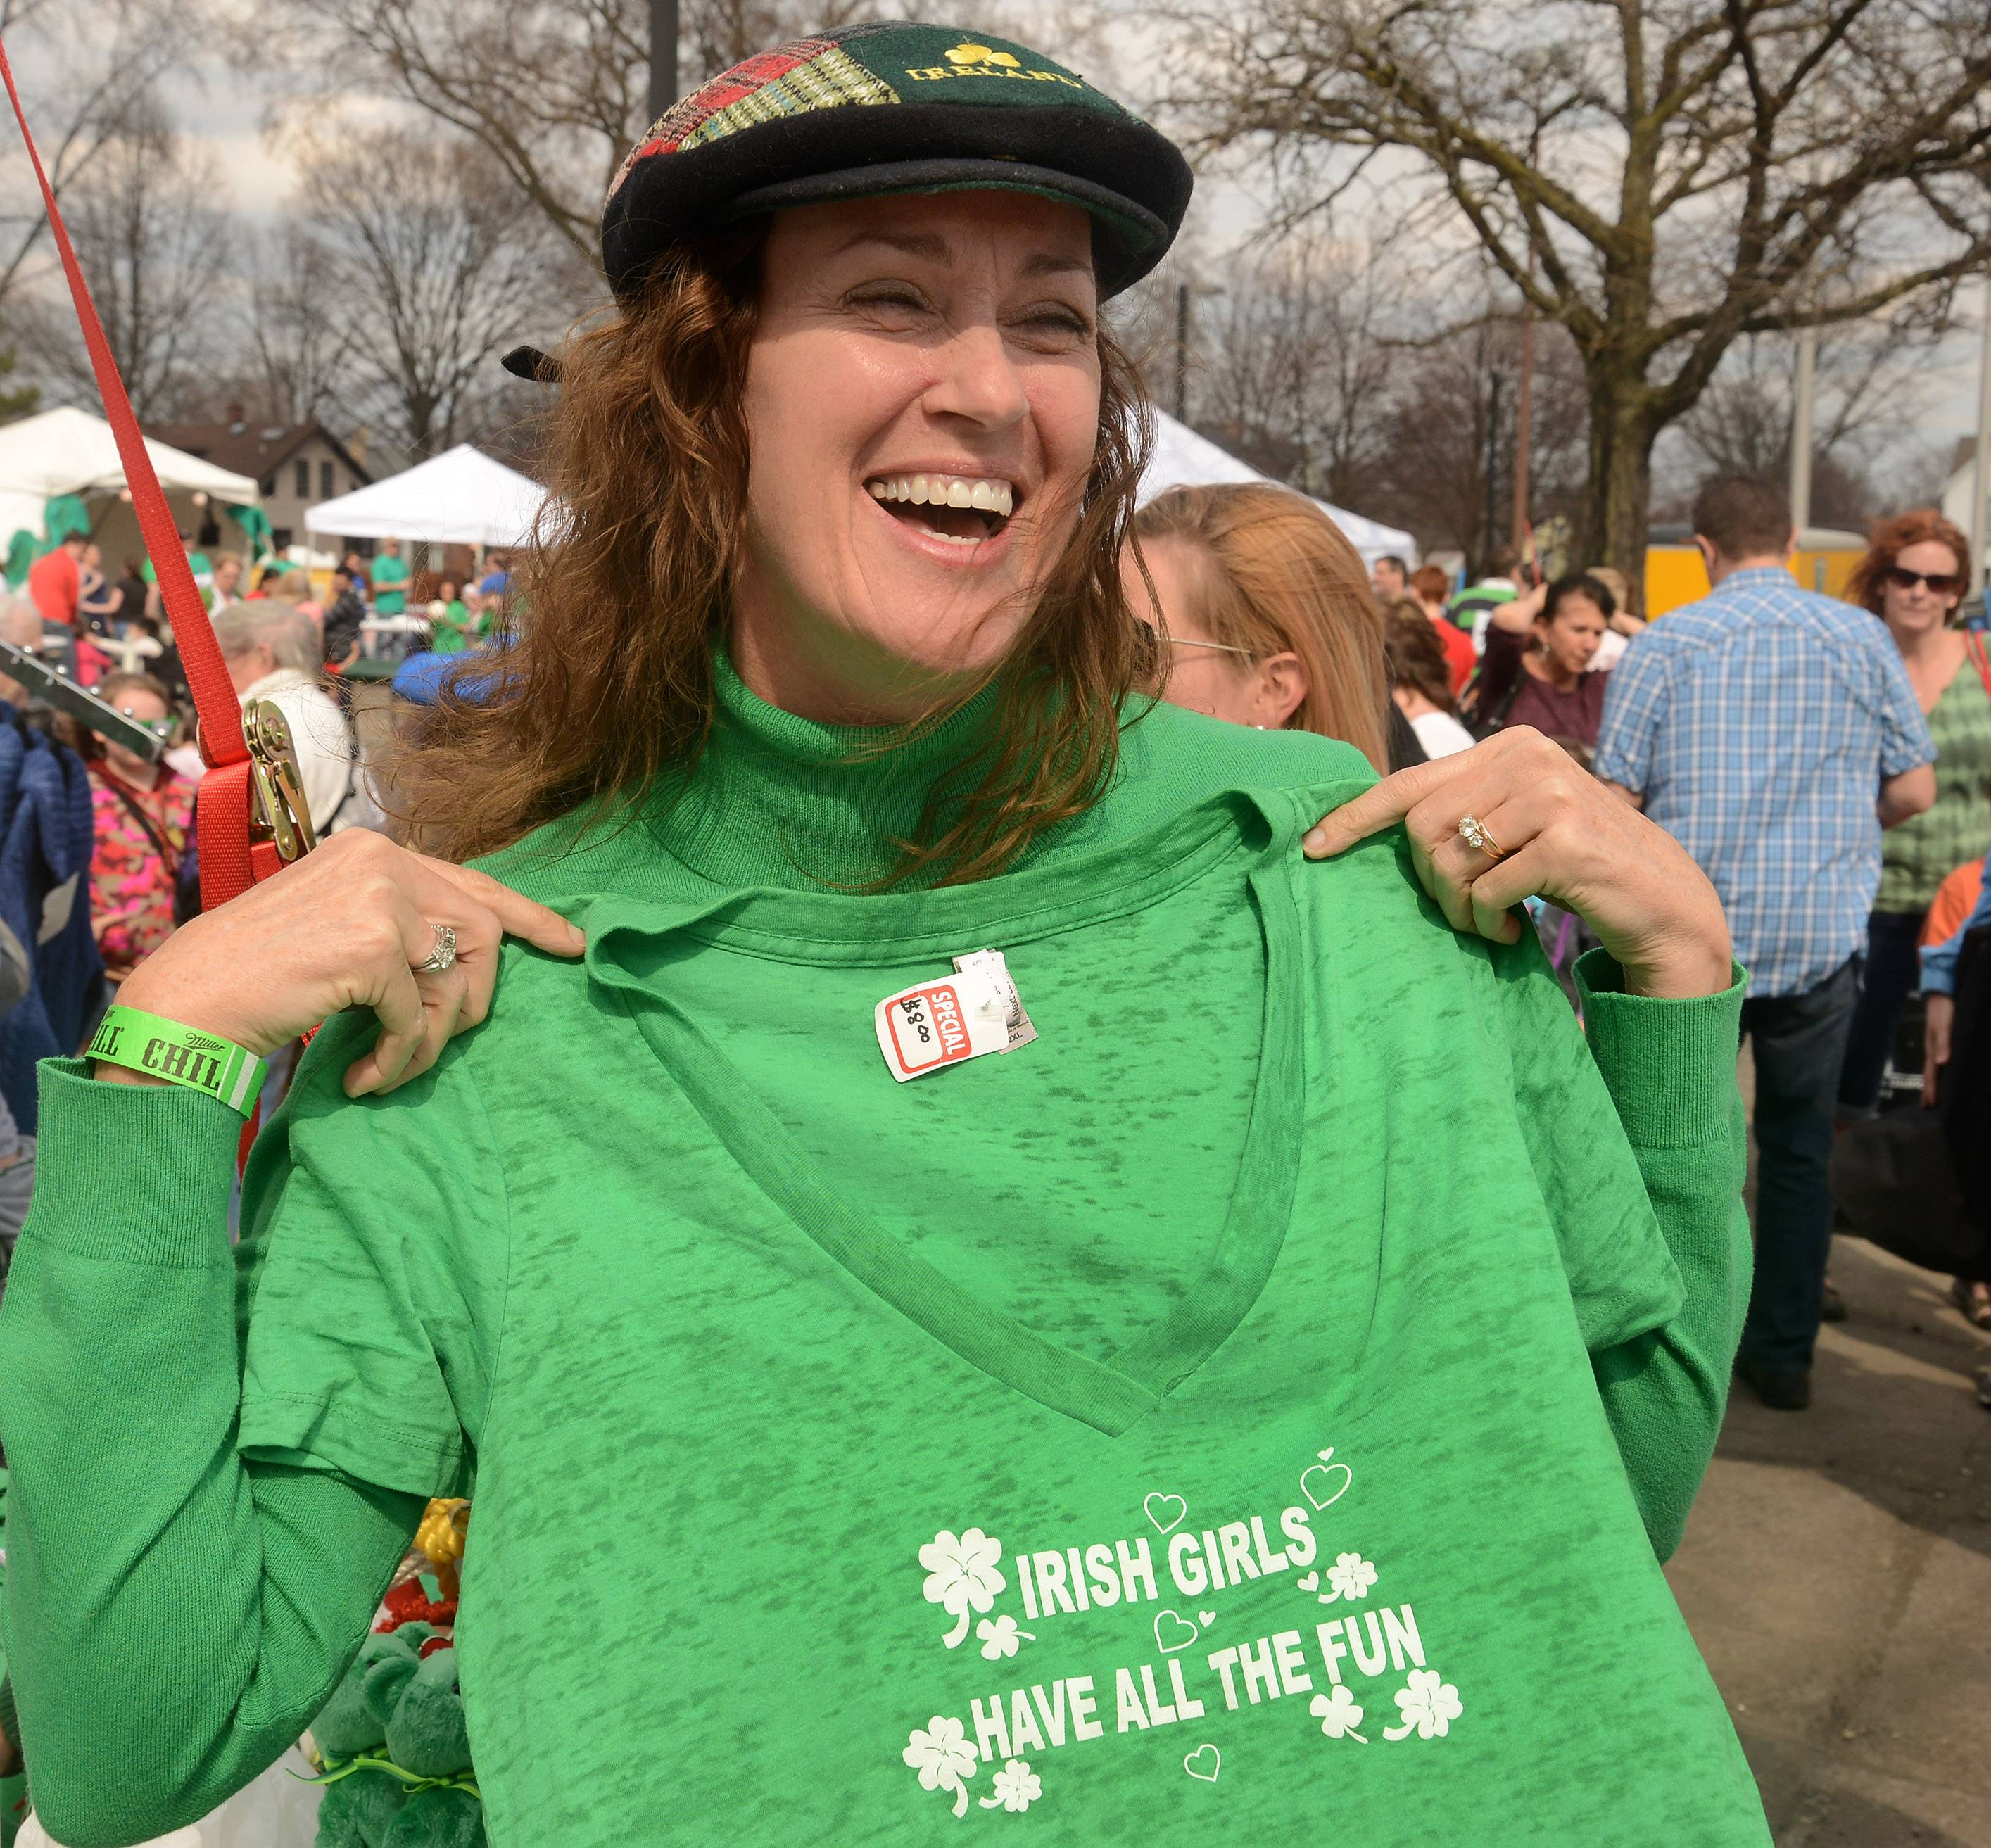 Meg McIlwee of Wilmette dons an Irish T-shirt during Mount Prospect's 3rd annual Irish Fest Saturday.